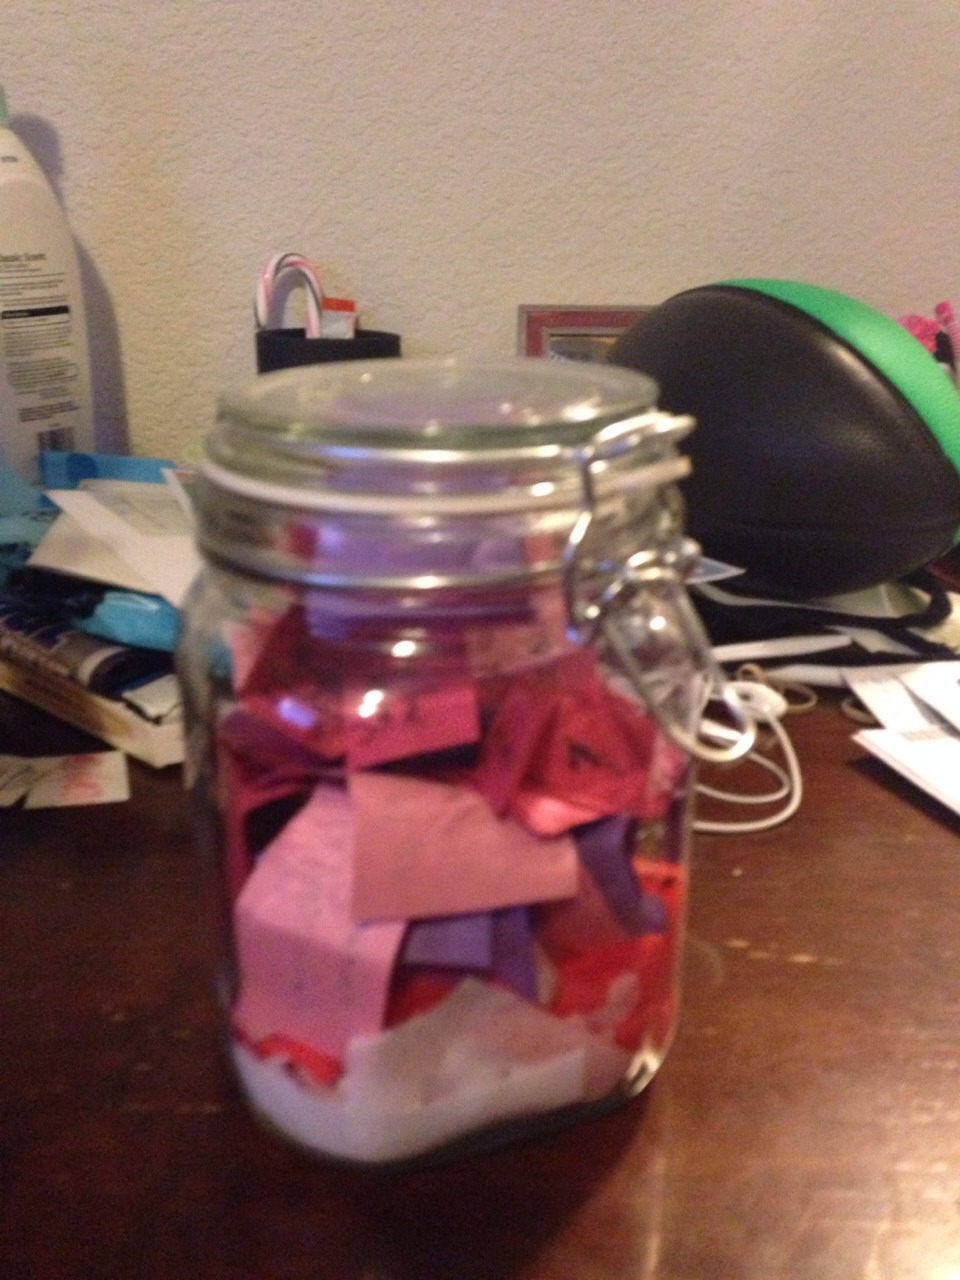 Get a small jar that closes. Write cute quotes, inspirations, or things that will make your significant other know how much you love them.